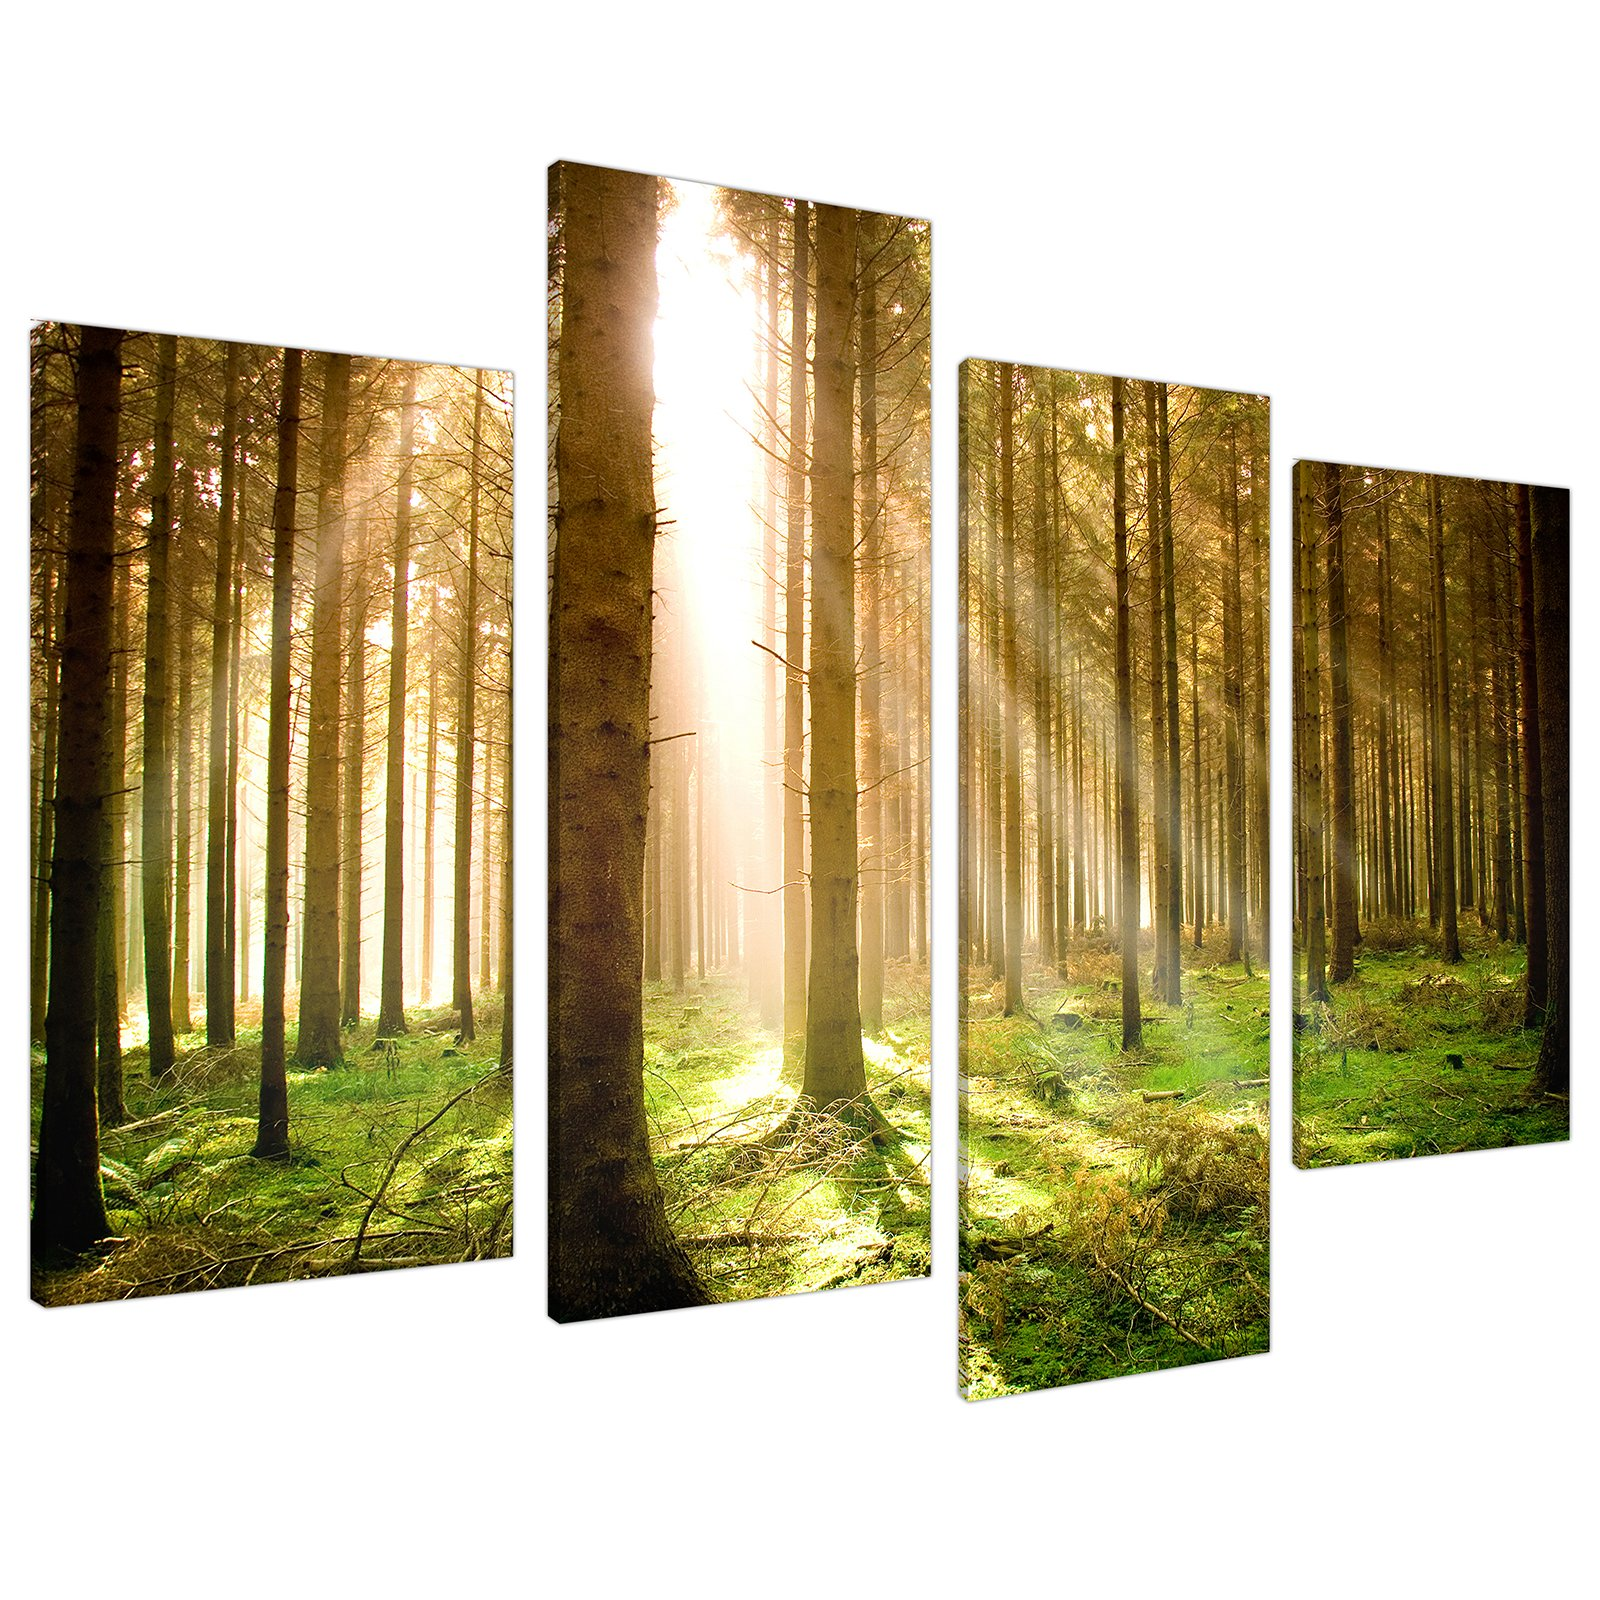 Extra Large Canvas Pictures: Amazon.co.uk